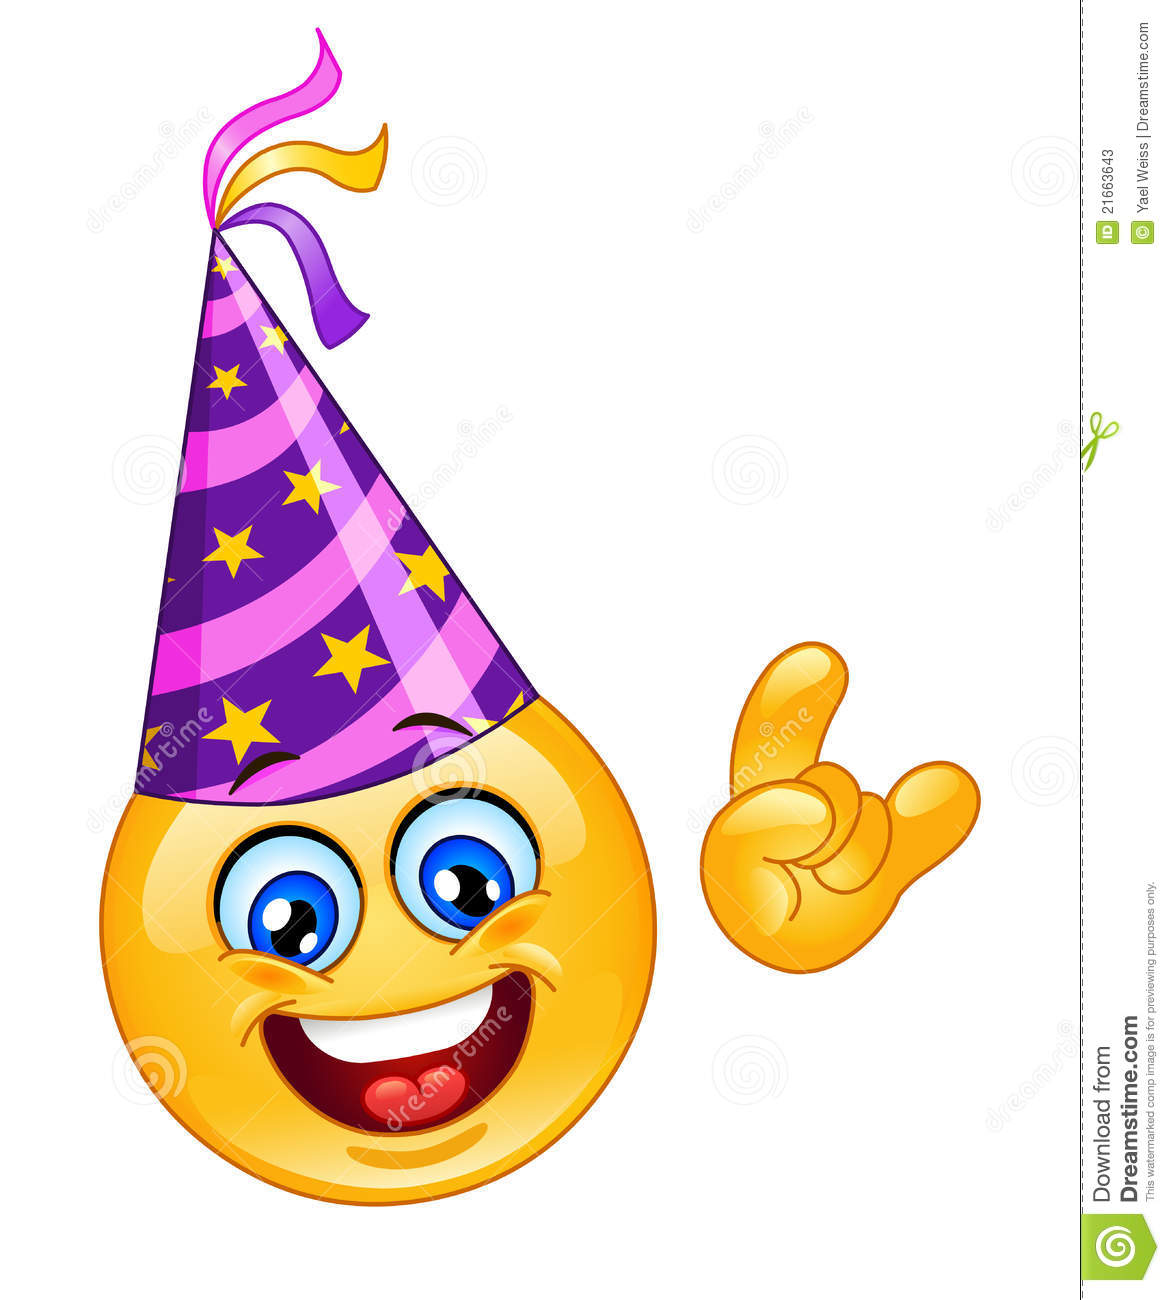 Birthday Emoticon Facebook Image Source Party Stock Photos